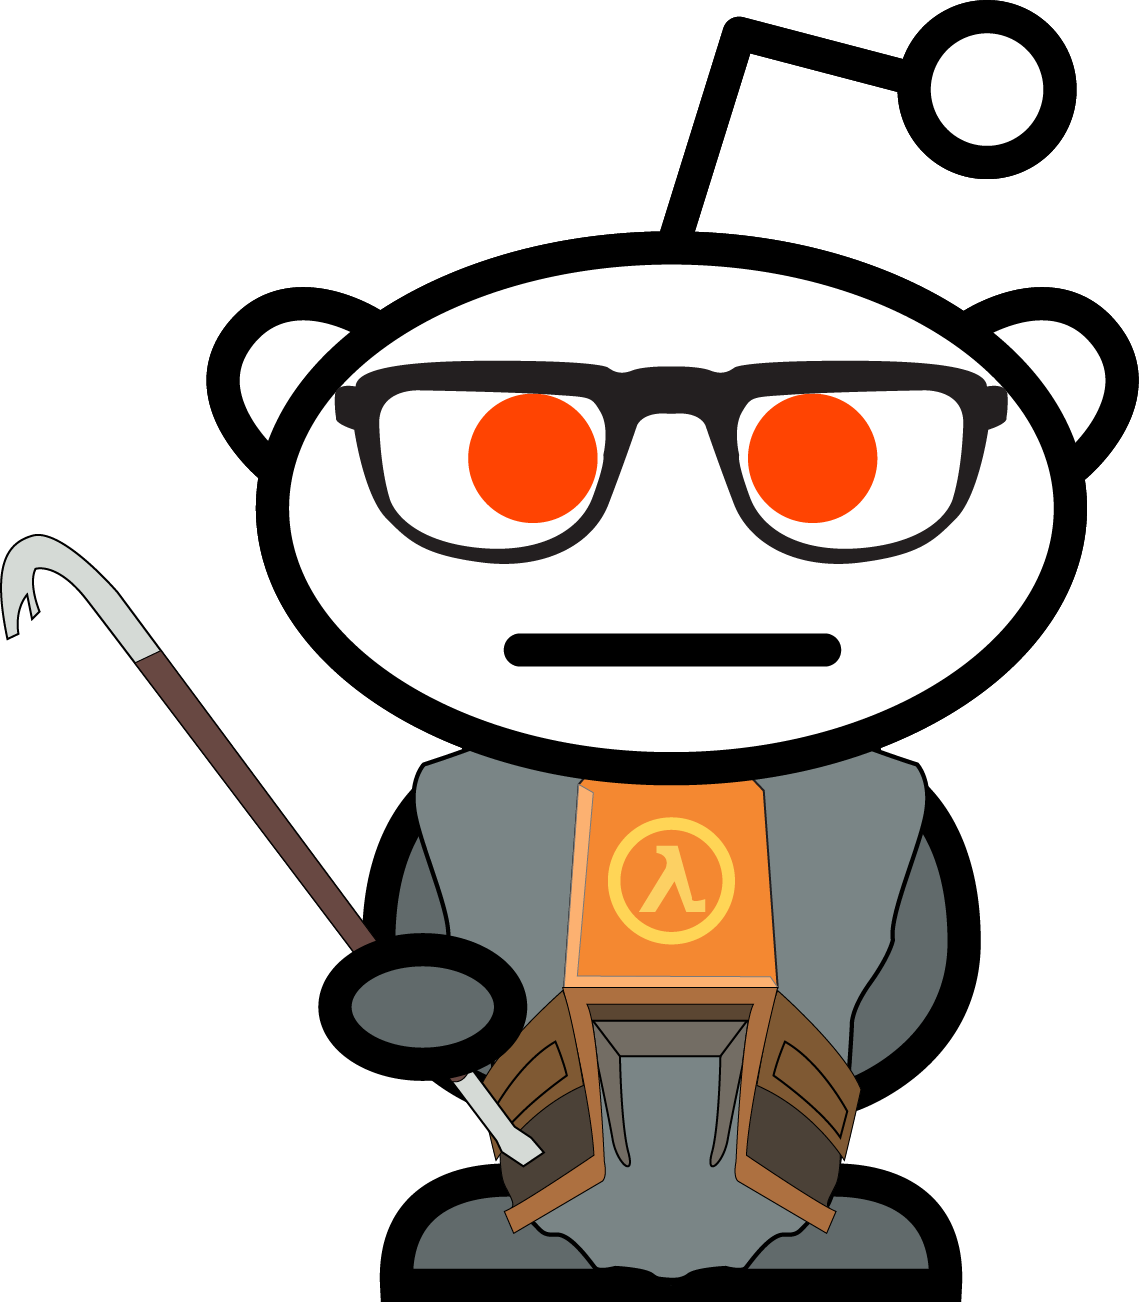 create subreddit within 2 hours